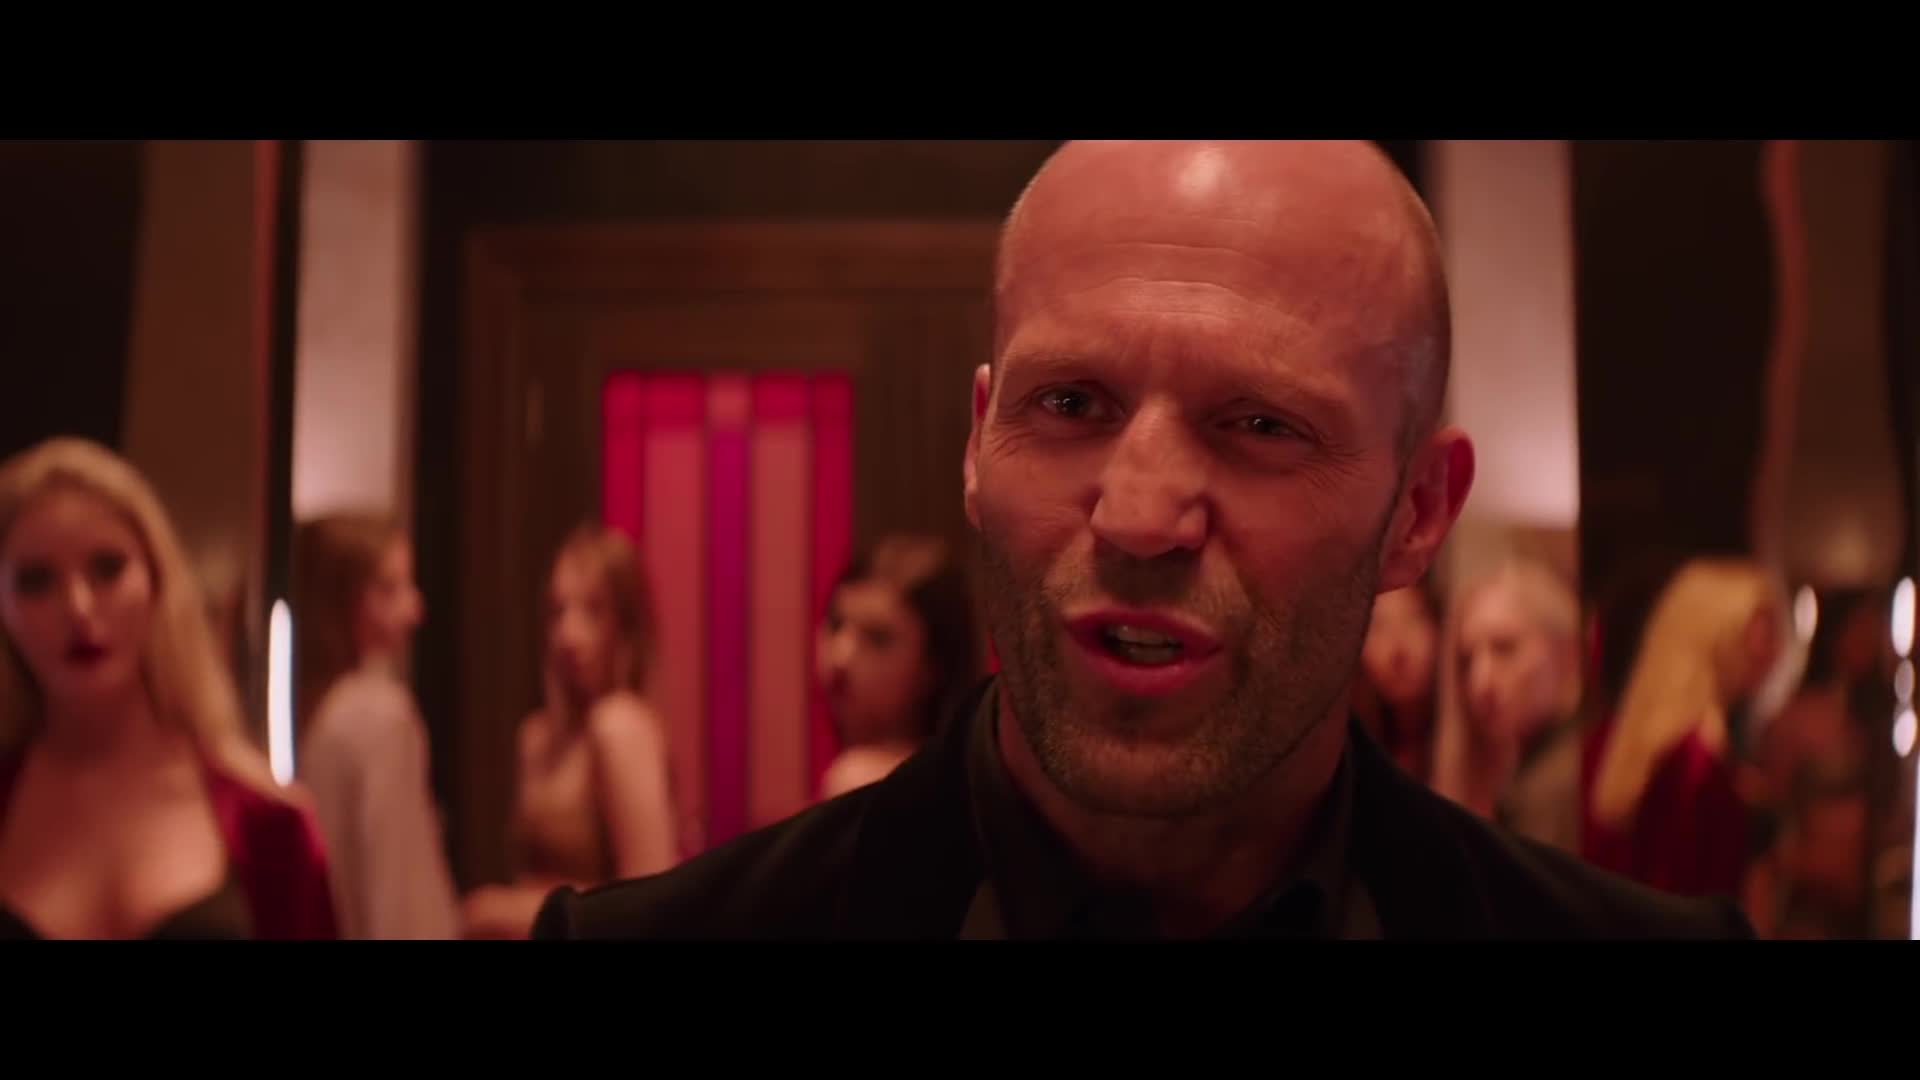 Trailer, Werbespot, Kino, Kinofilm, Super Bowl, Super Bowl 2019, Universal Pictures, Fast & Furious, Fast & Furious: Hobbs & Shaw